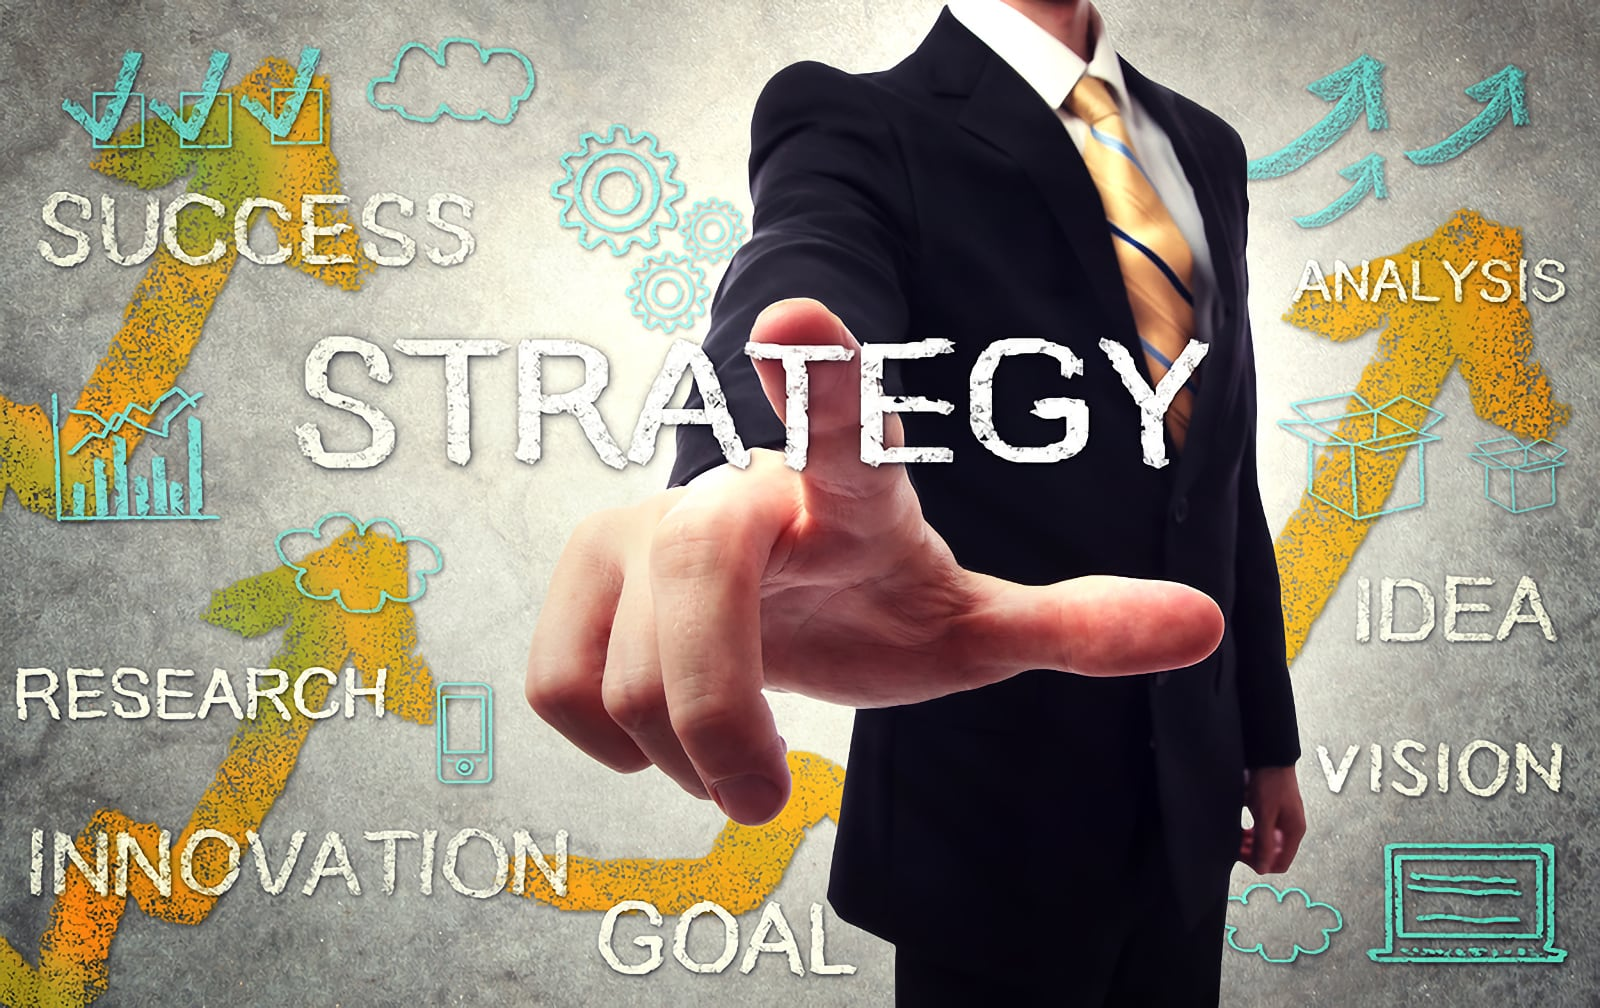 Photo concept image of business man pointing at the word Strategy in a word cloud of words related to strategy and strategic thinking